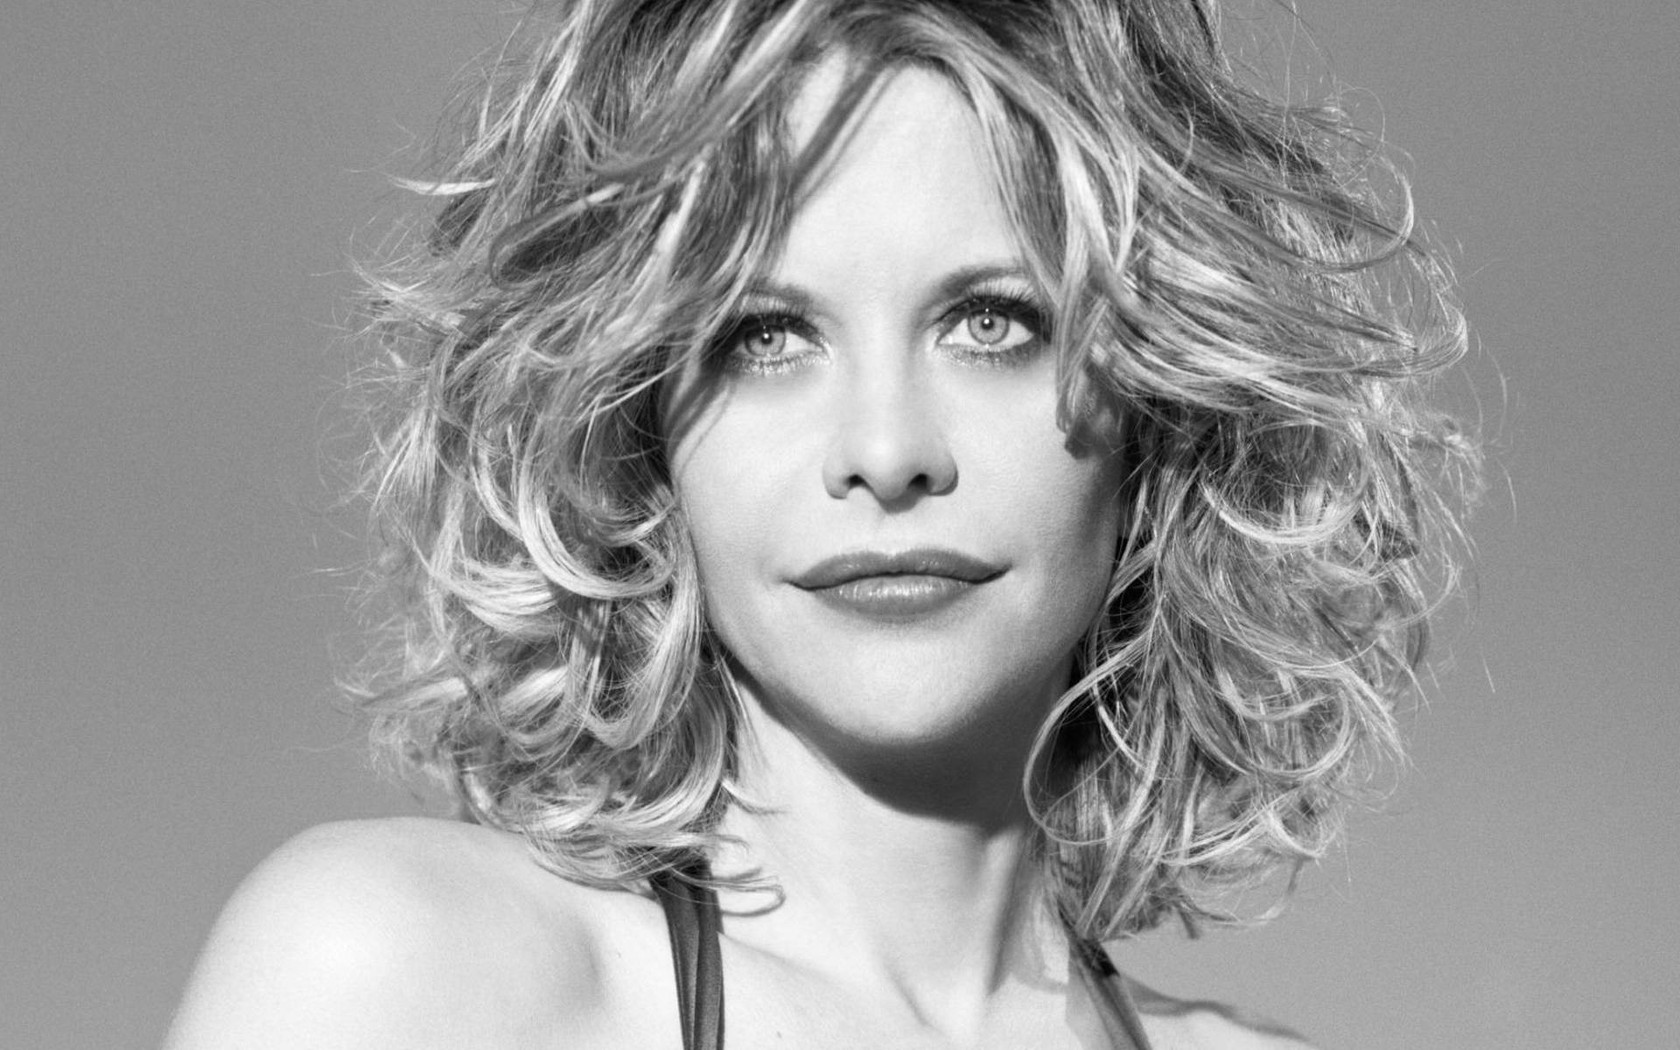 Patrick Wallpaper Hd 2 Hd Meg Ryan Wallpapers